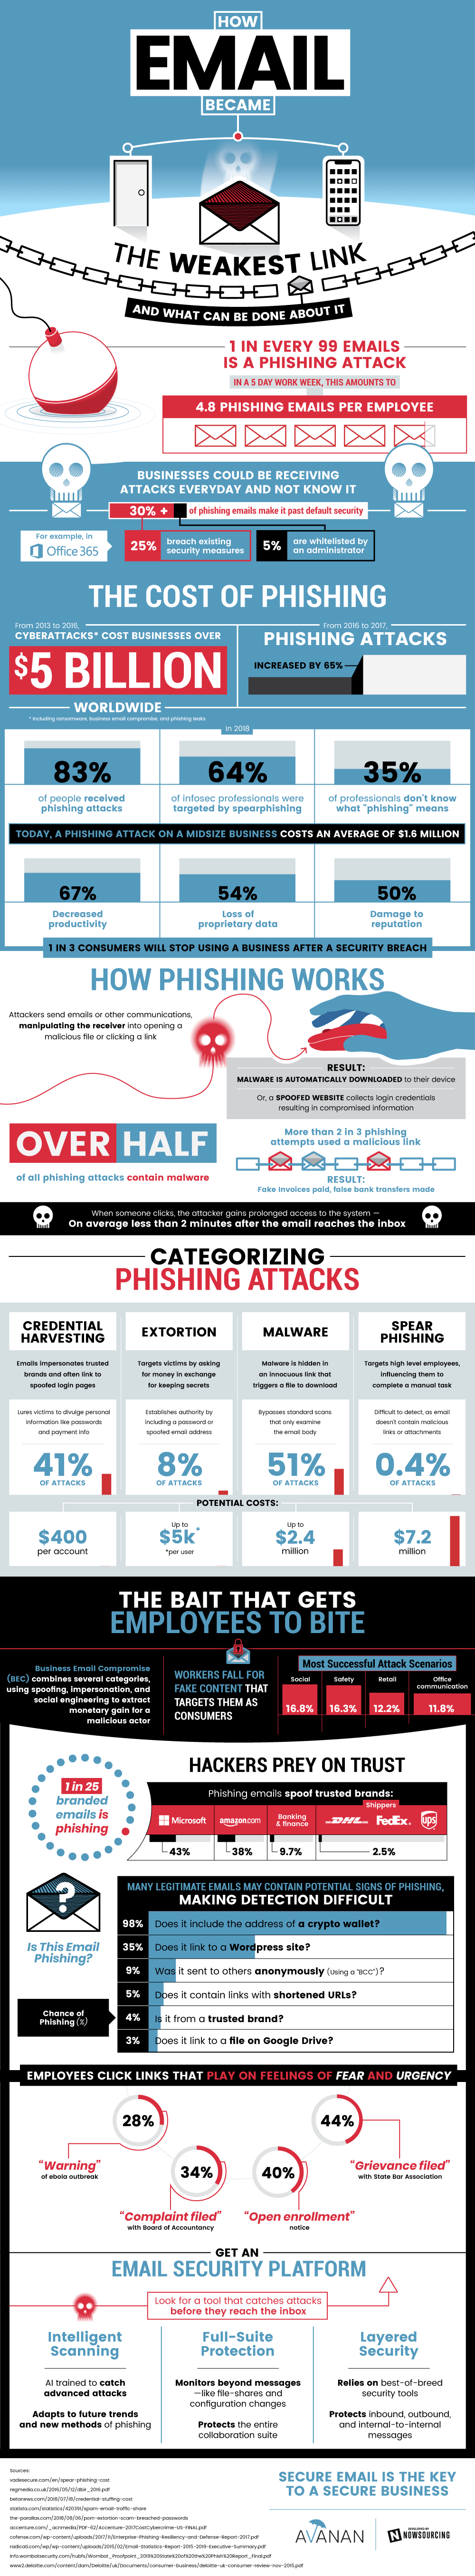 How Email Became the Weakest Link - Infographic